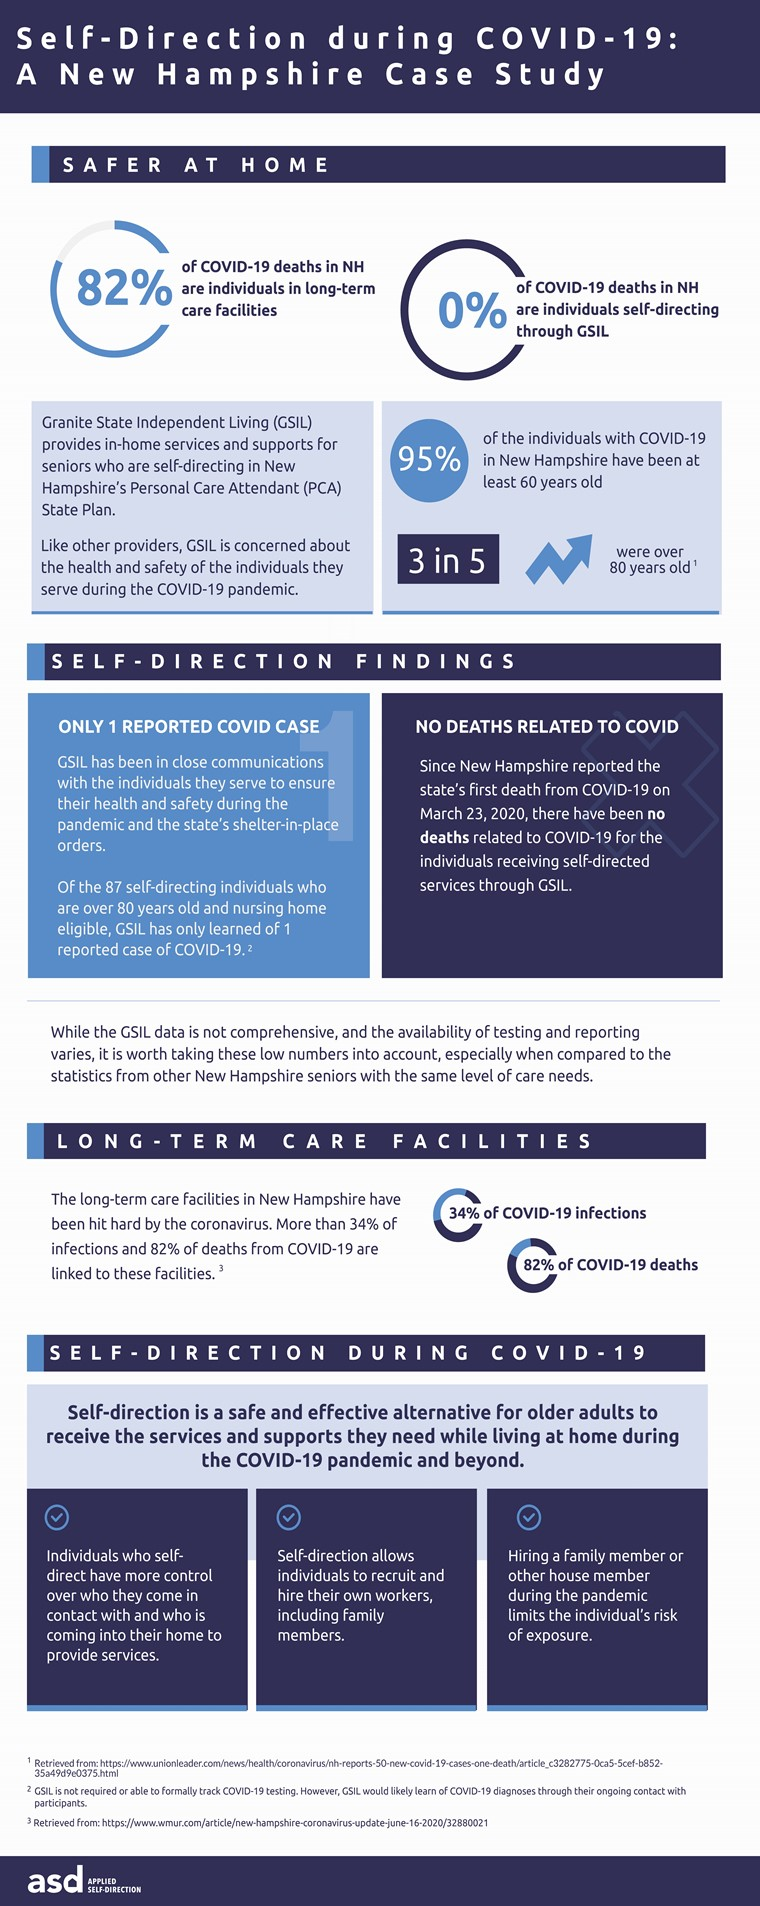 In collaboration with Granite State Independent Living, Applied Self-Direction created a case study to better understand how individuals who self-direct are faring during the COVID-19 pandemic. The case study states that 82% of COVID deaths in New Hampshire are related to long-term care facilities and 0% of deaths are related to COVID in Self-Direction, with only 1 reported case of infection in Self-Direction.